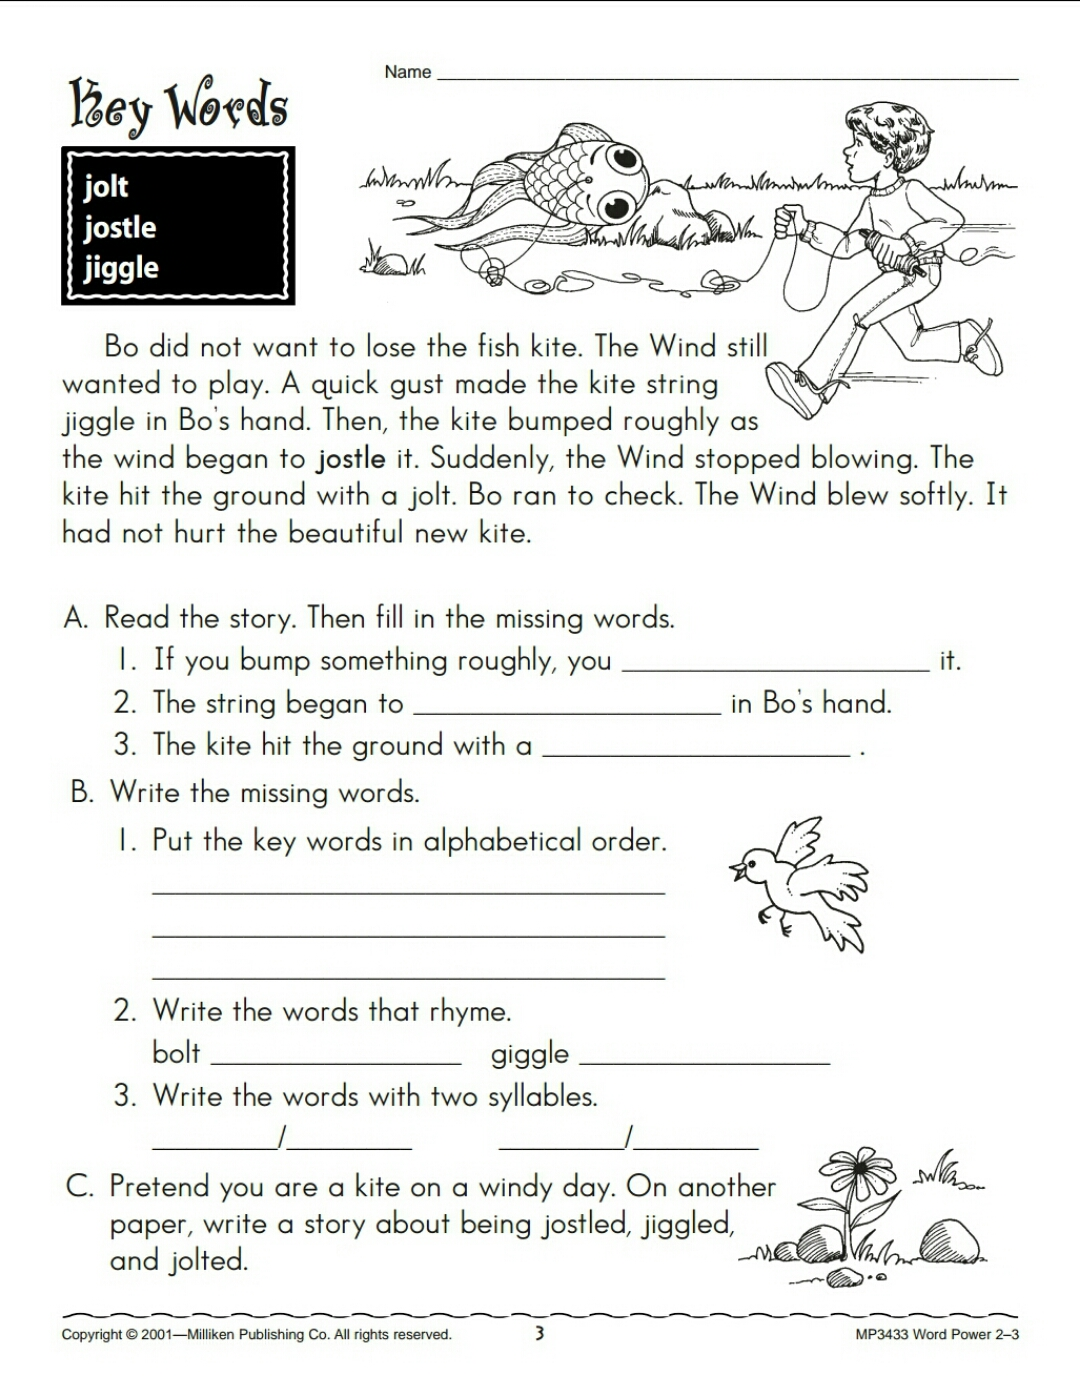 Download Word Power Vocabulary Enrichment Activities (PDF